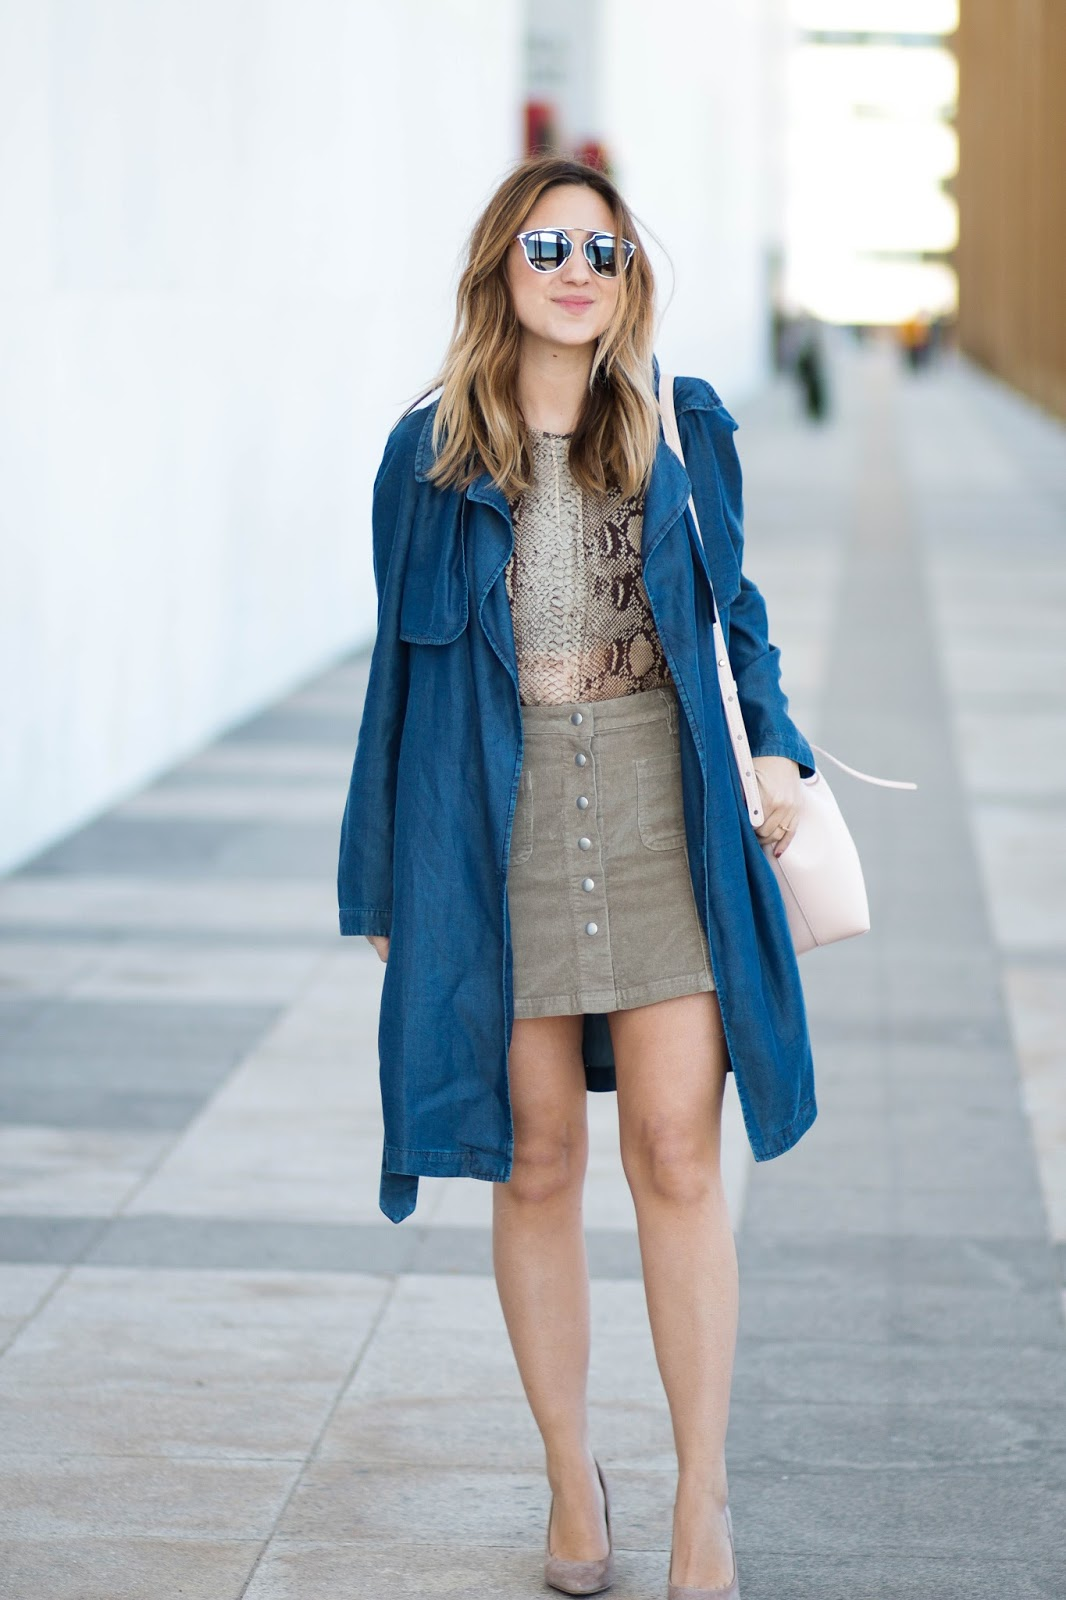 button up skirt, mini skirt, lulus skirt, denim trench coat, snake print, dc blog, blogger, style blogger, outfit